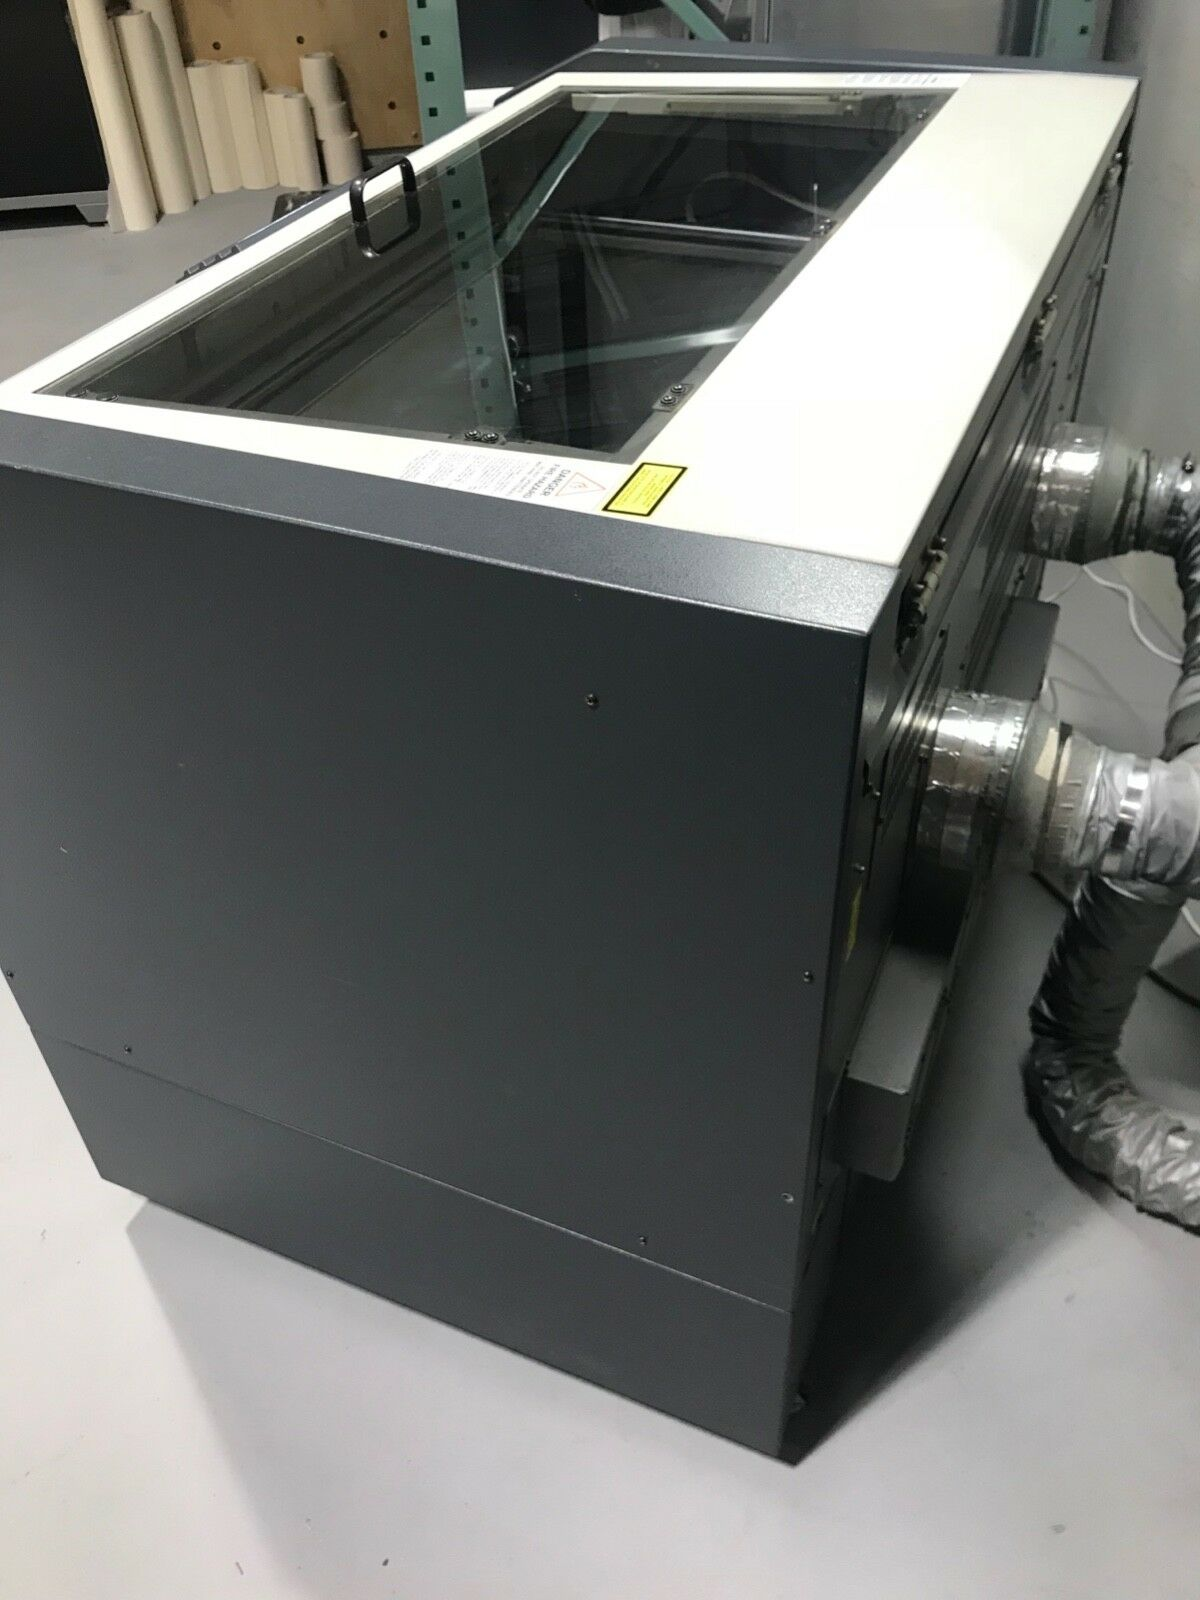 Epilog Legend 36 EXT 120 Watt Laser. Pre owned owned owned Used. One owner. Well cared for. f88e7b